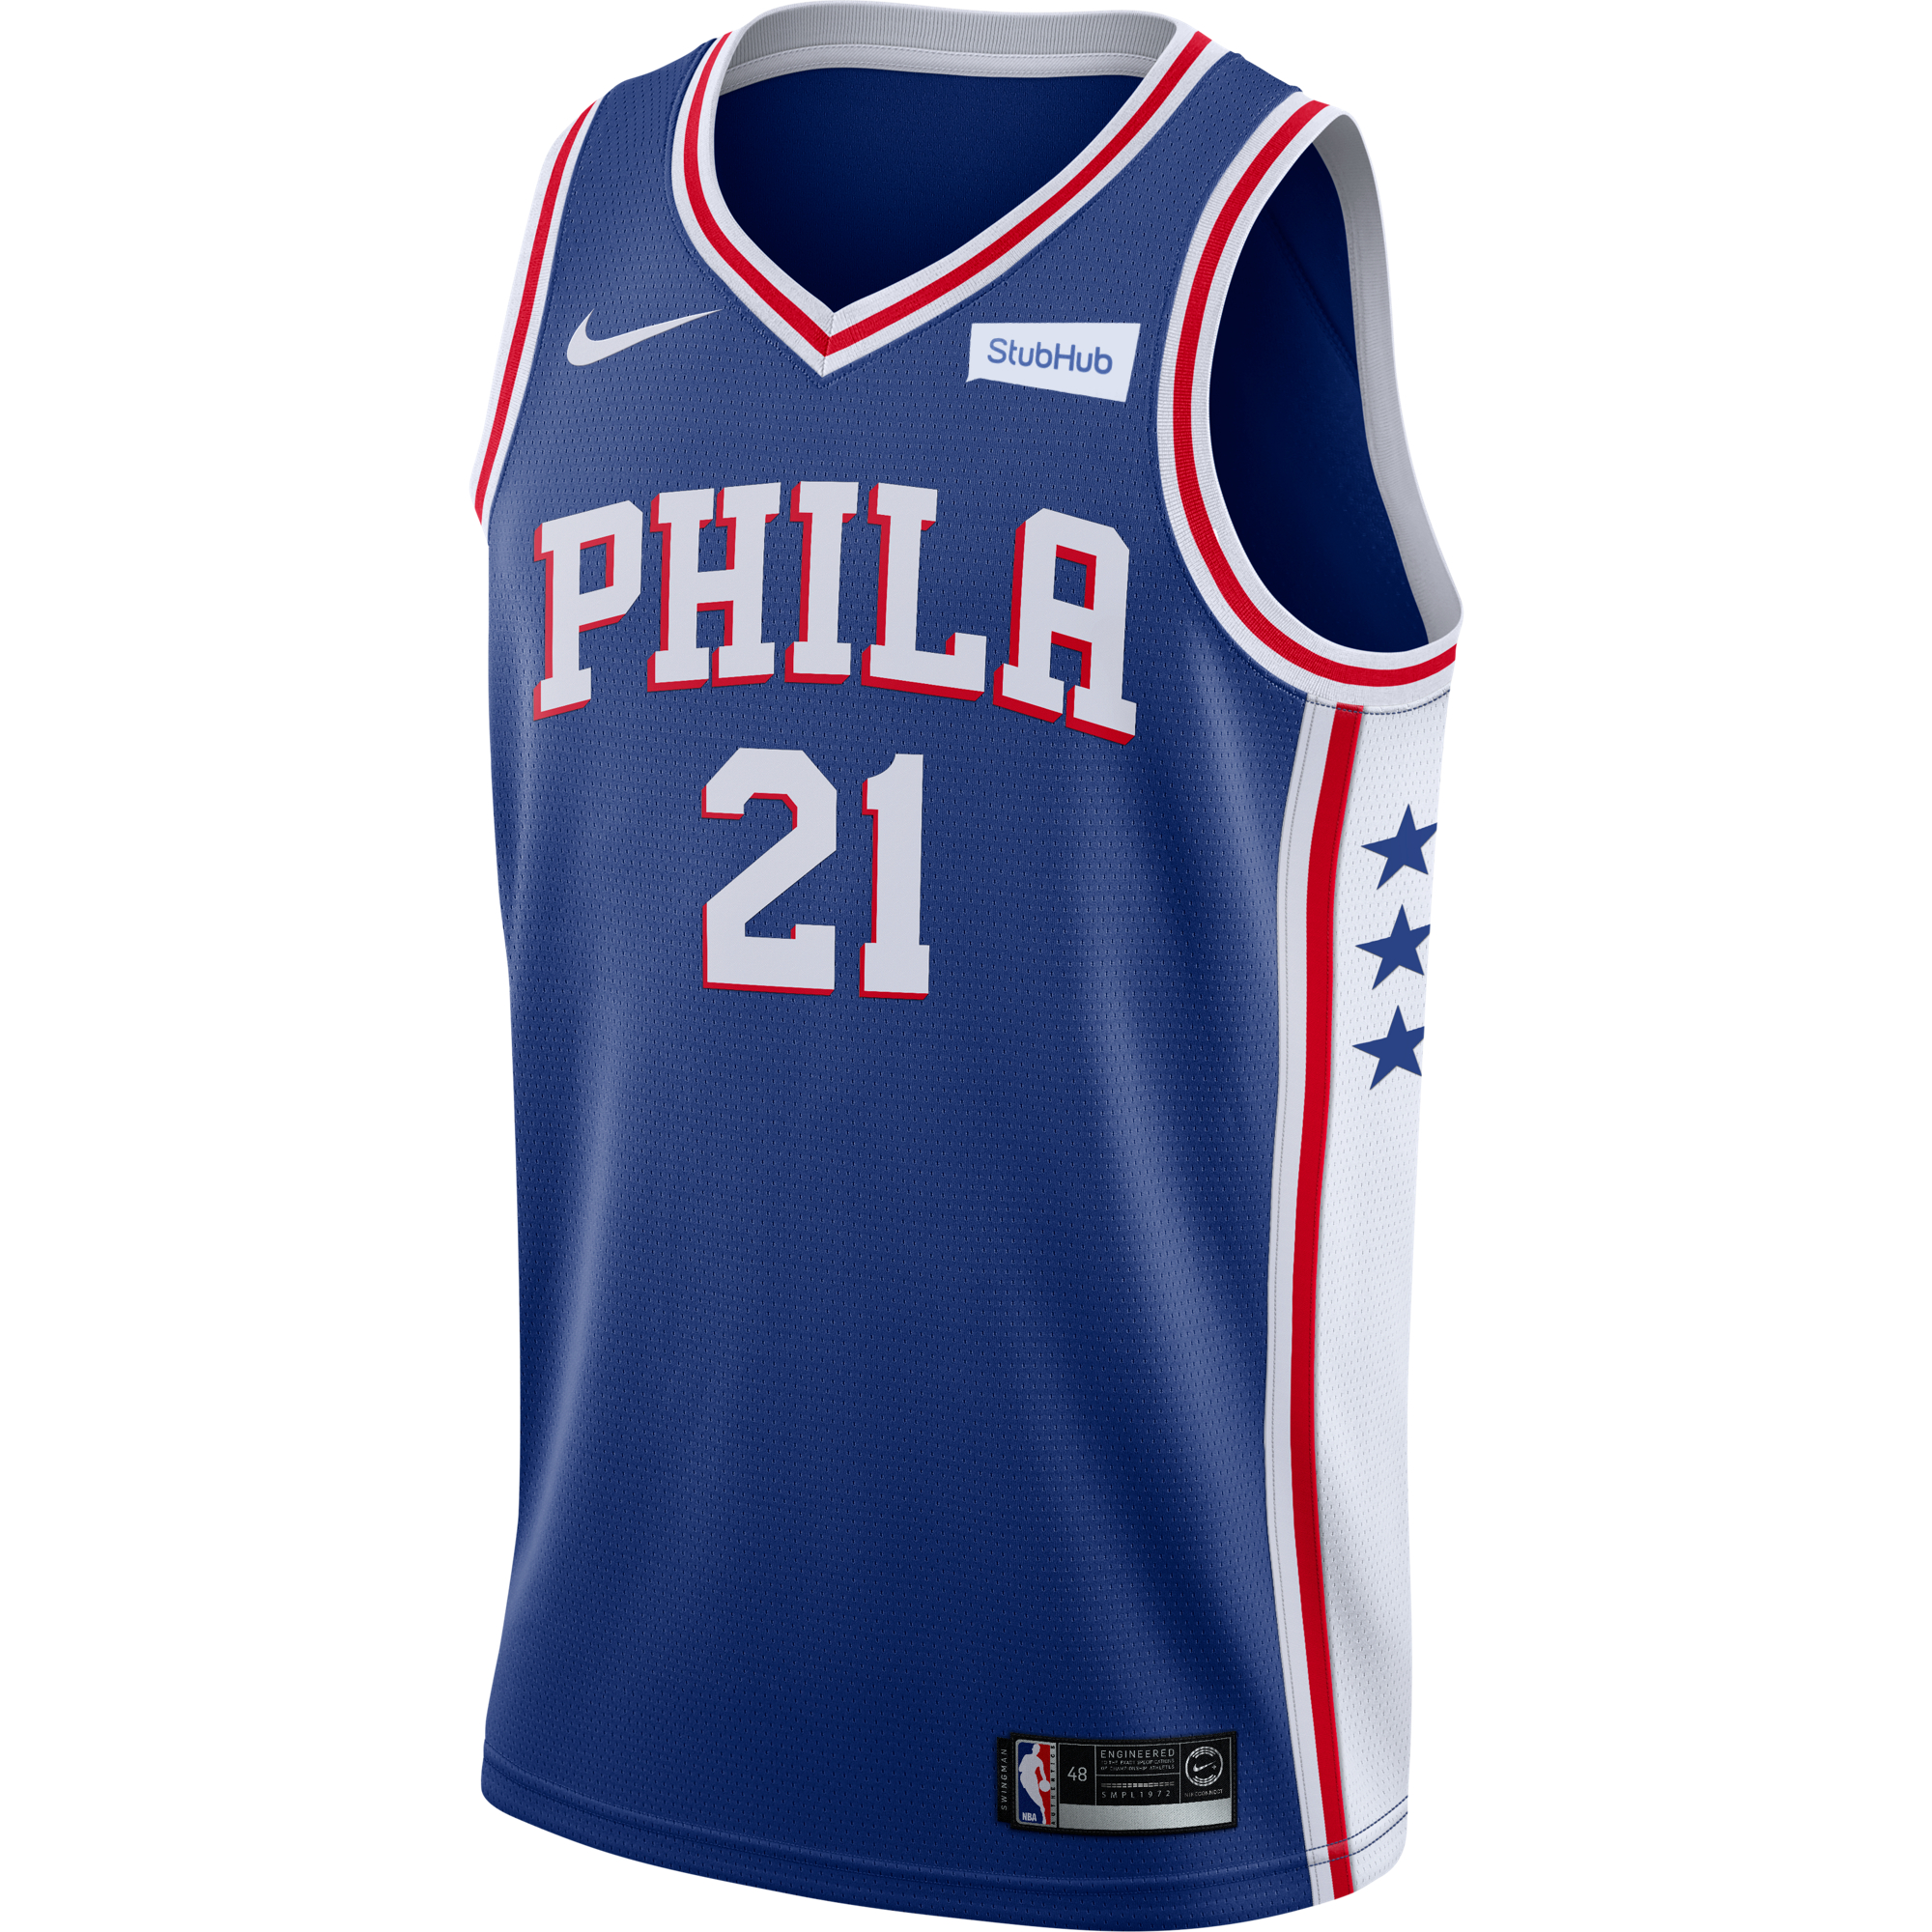 Philadelphia 76ers Men s Blue Joel Embiid Swingman Jersey by Nike ... af623b28305